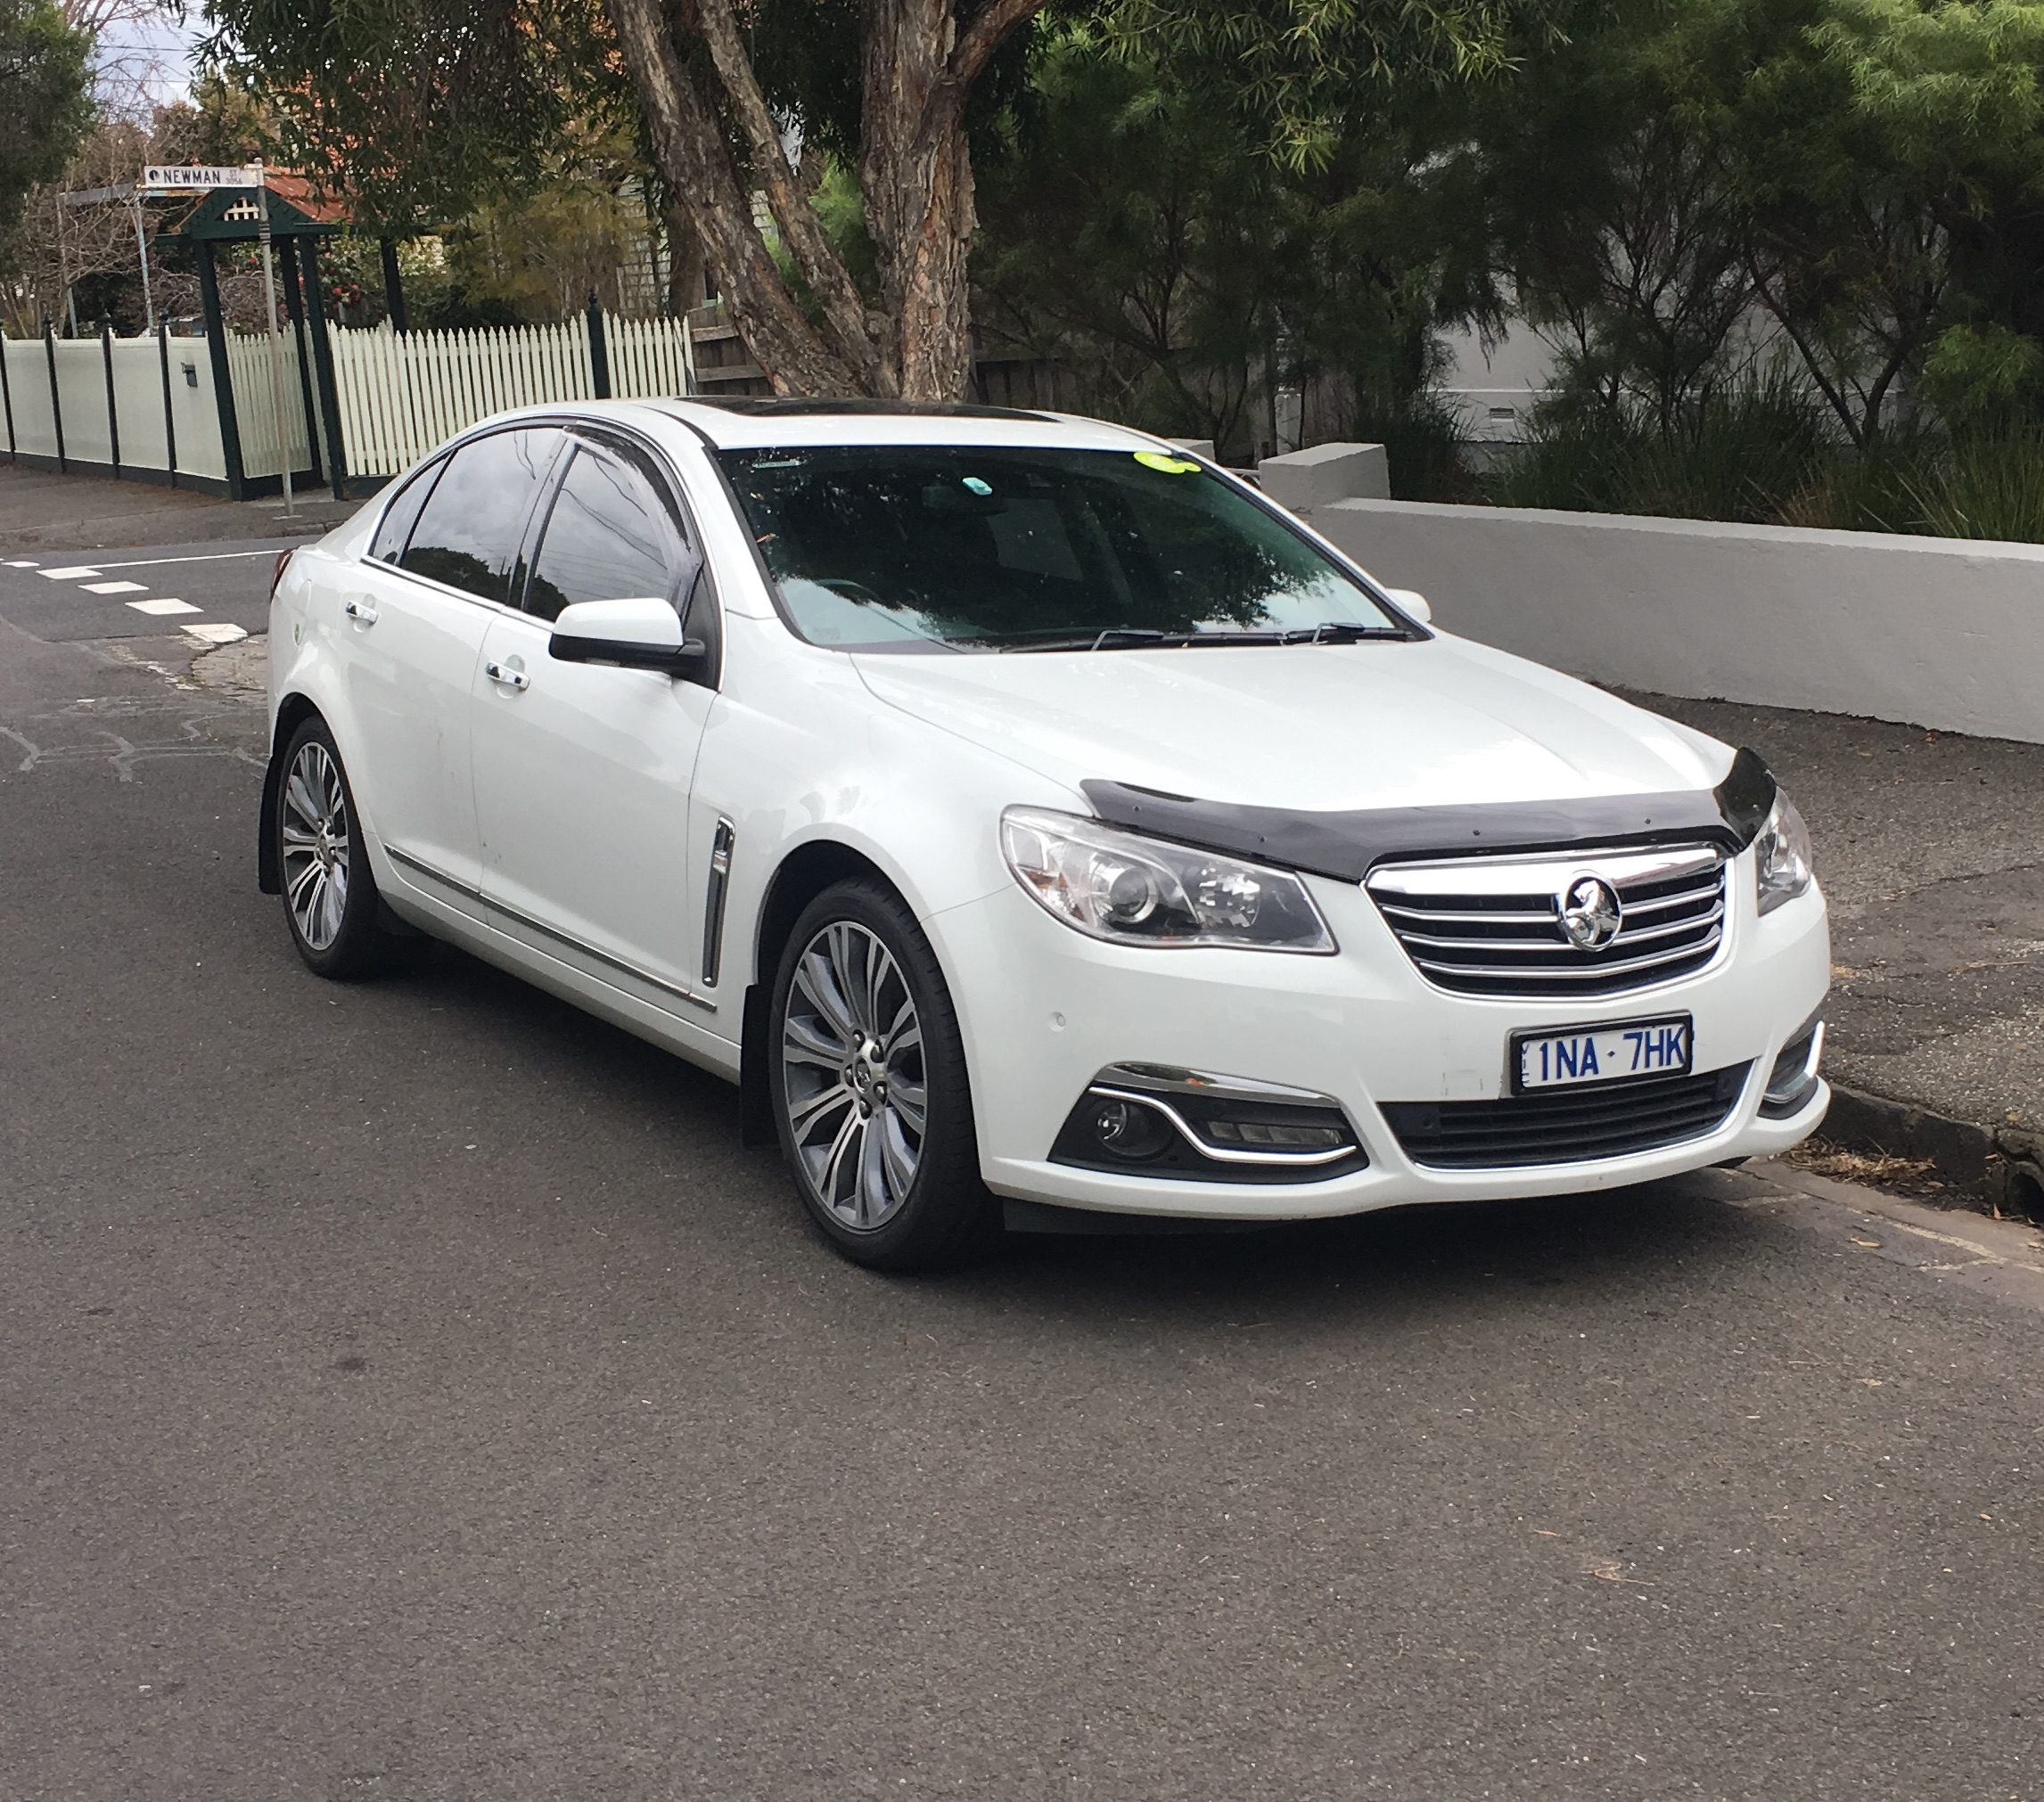 Picture of Rodwan's 2014 Holden Calais